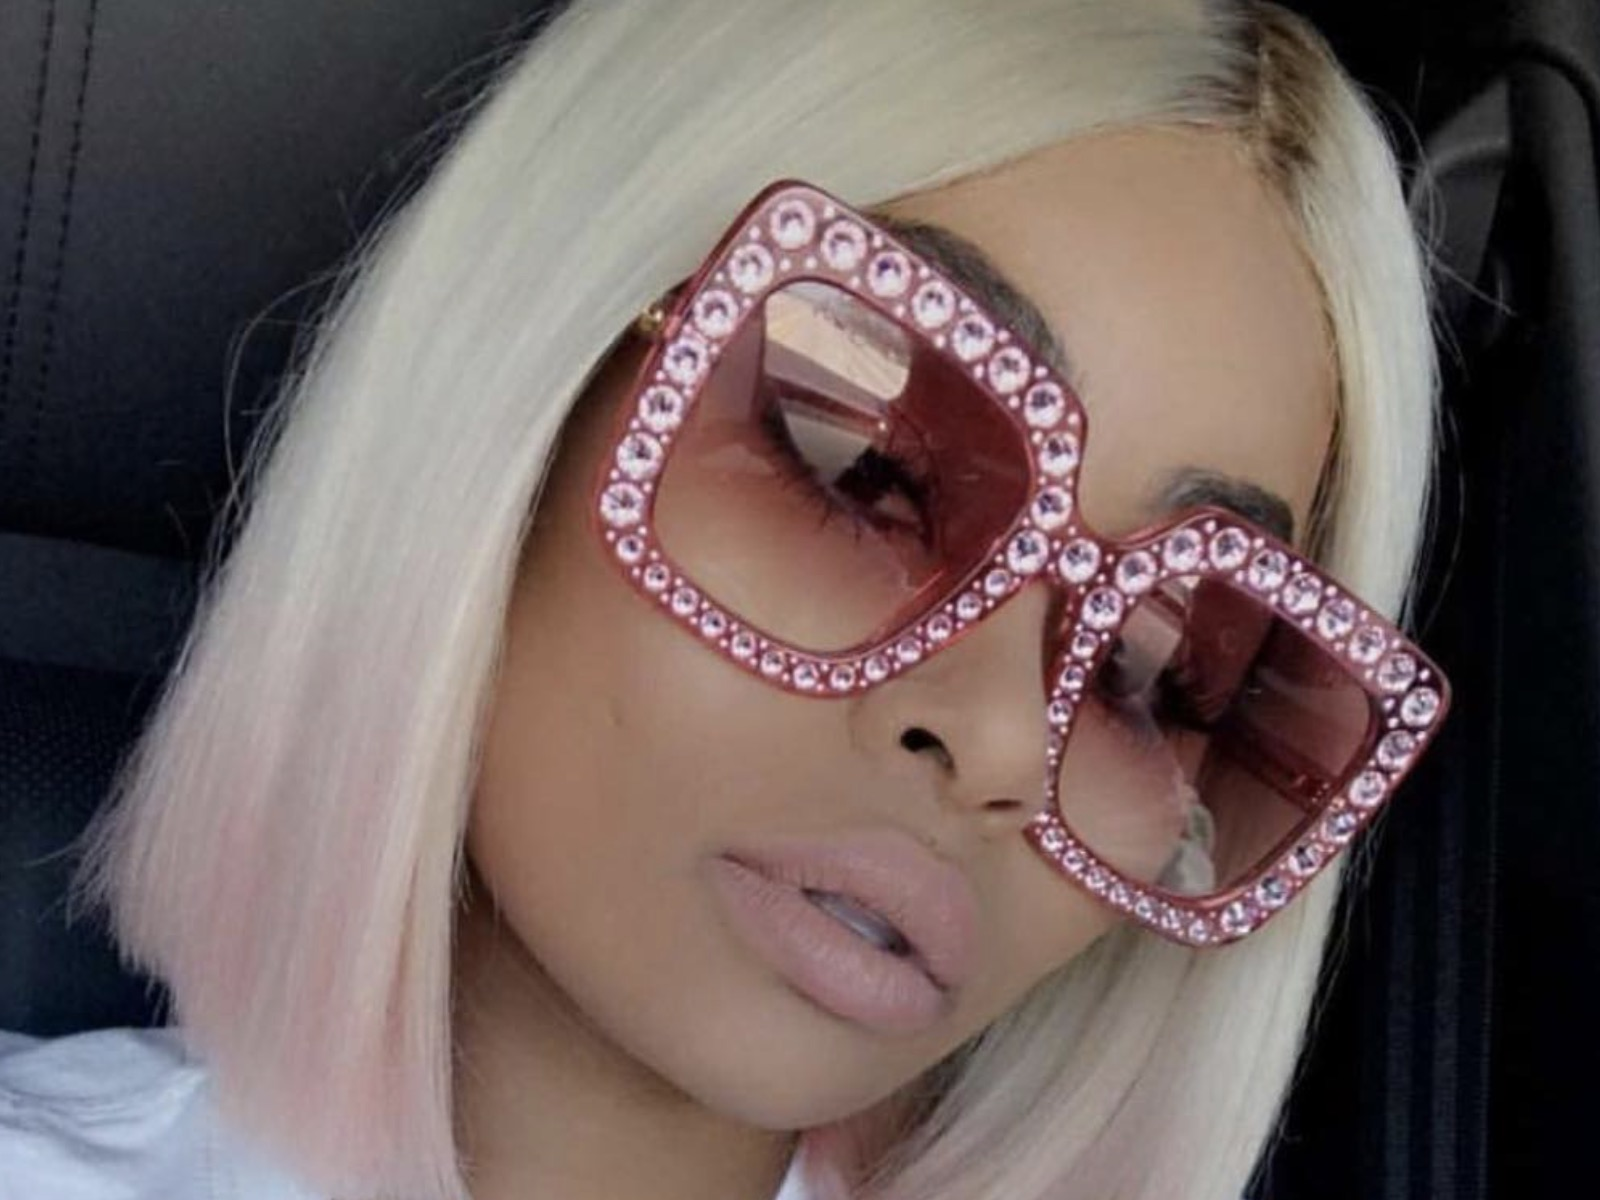 Blac Chyna Is Getting Ready For The Holiday Season - Her Skincare Line Will Have You Glowing For New Year's Eve